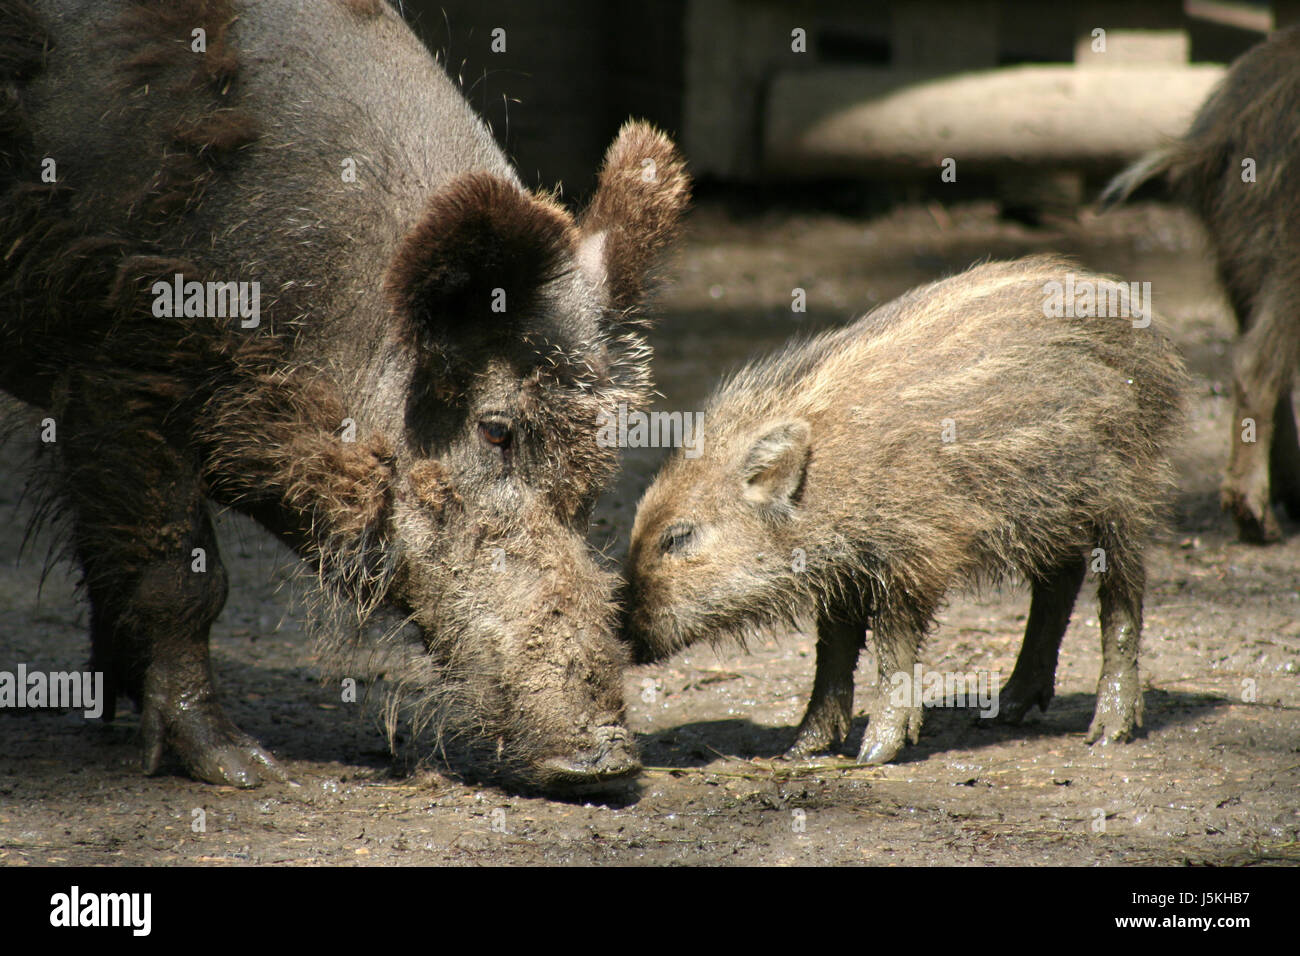 mammal striated mud wild boar pig smooch sniff dirty young of a wild